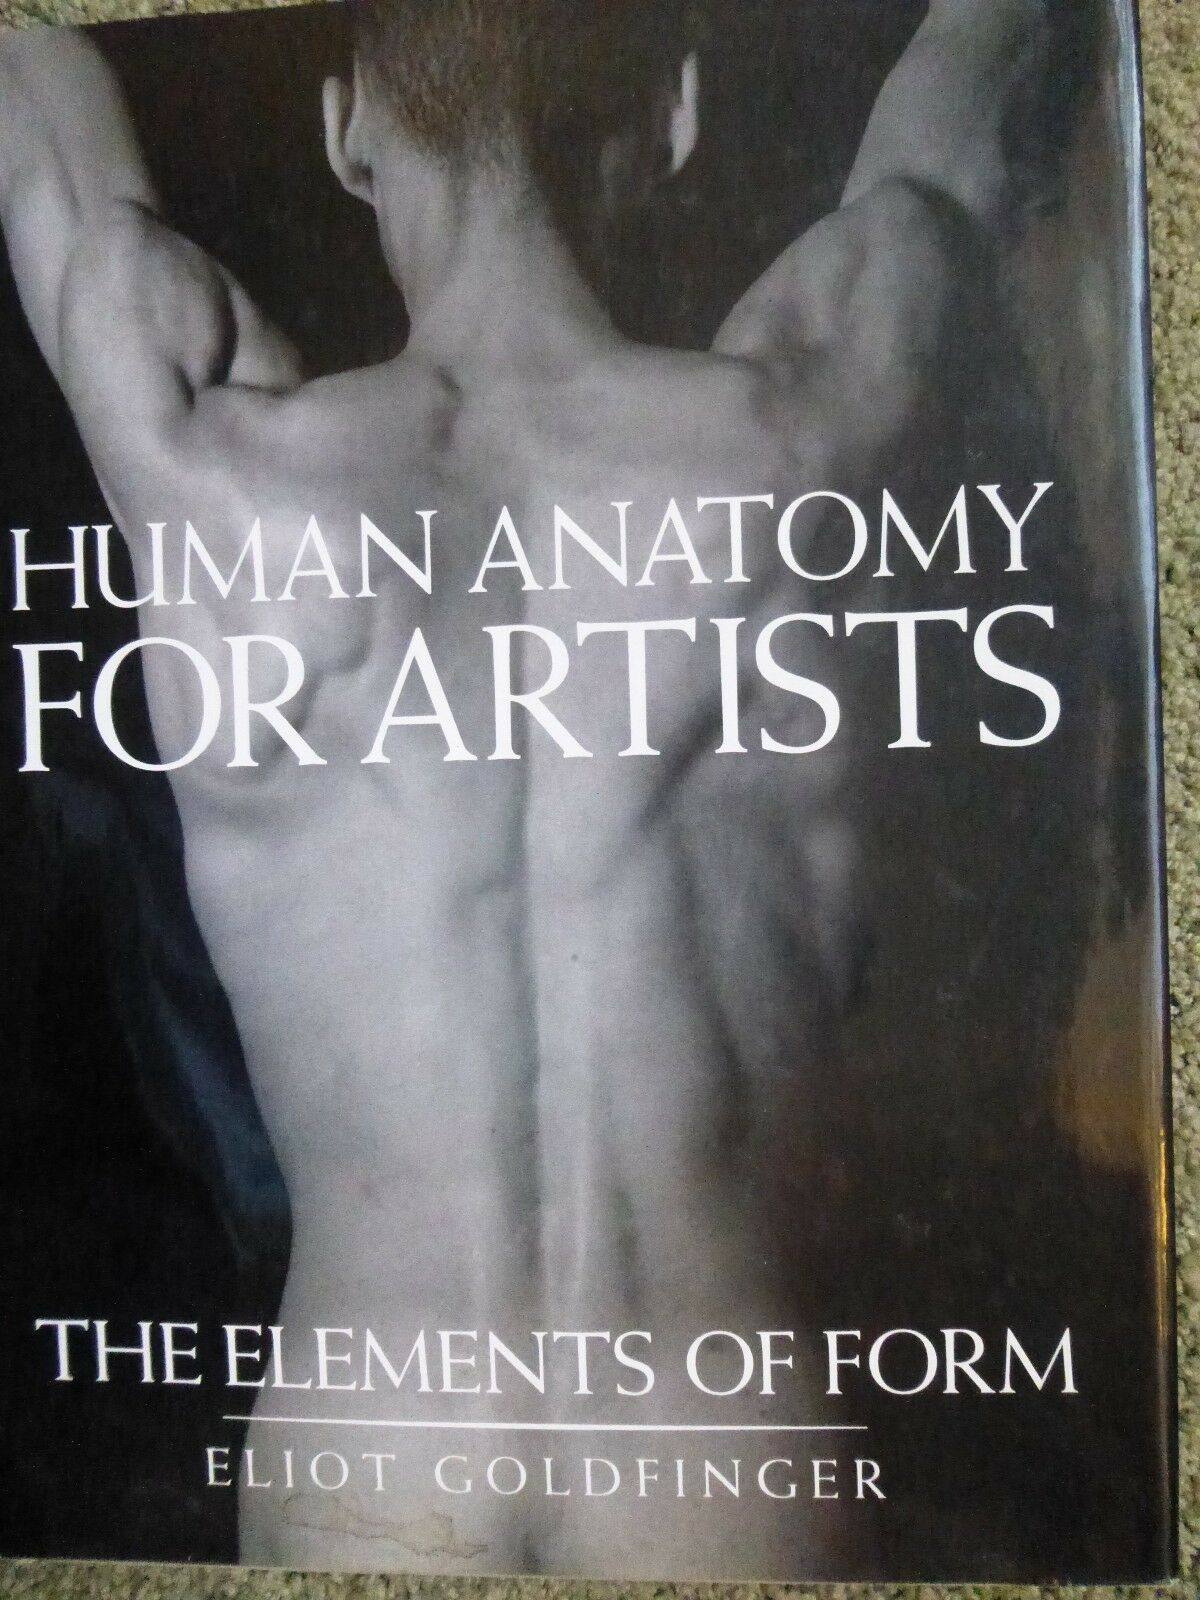 Human Anatomy For Artists The Elements Of Form By Eliot Goldfinger